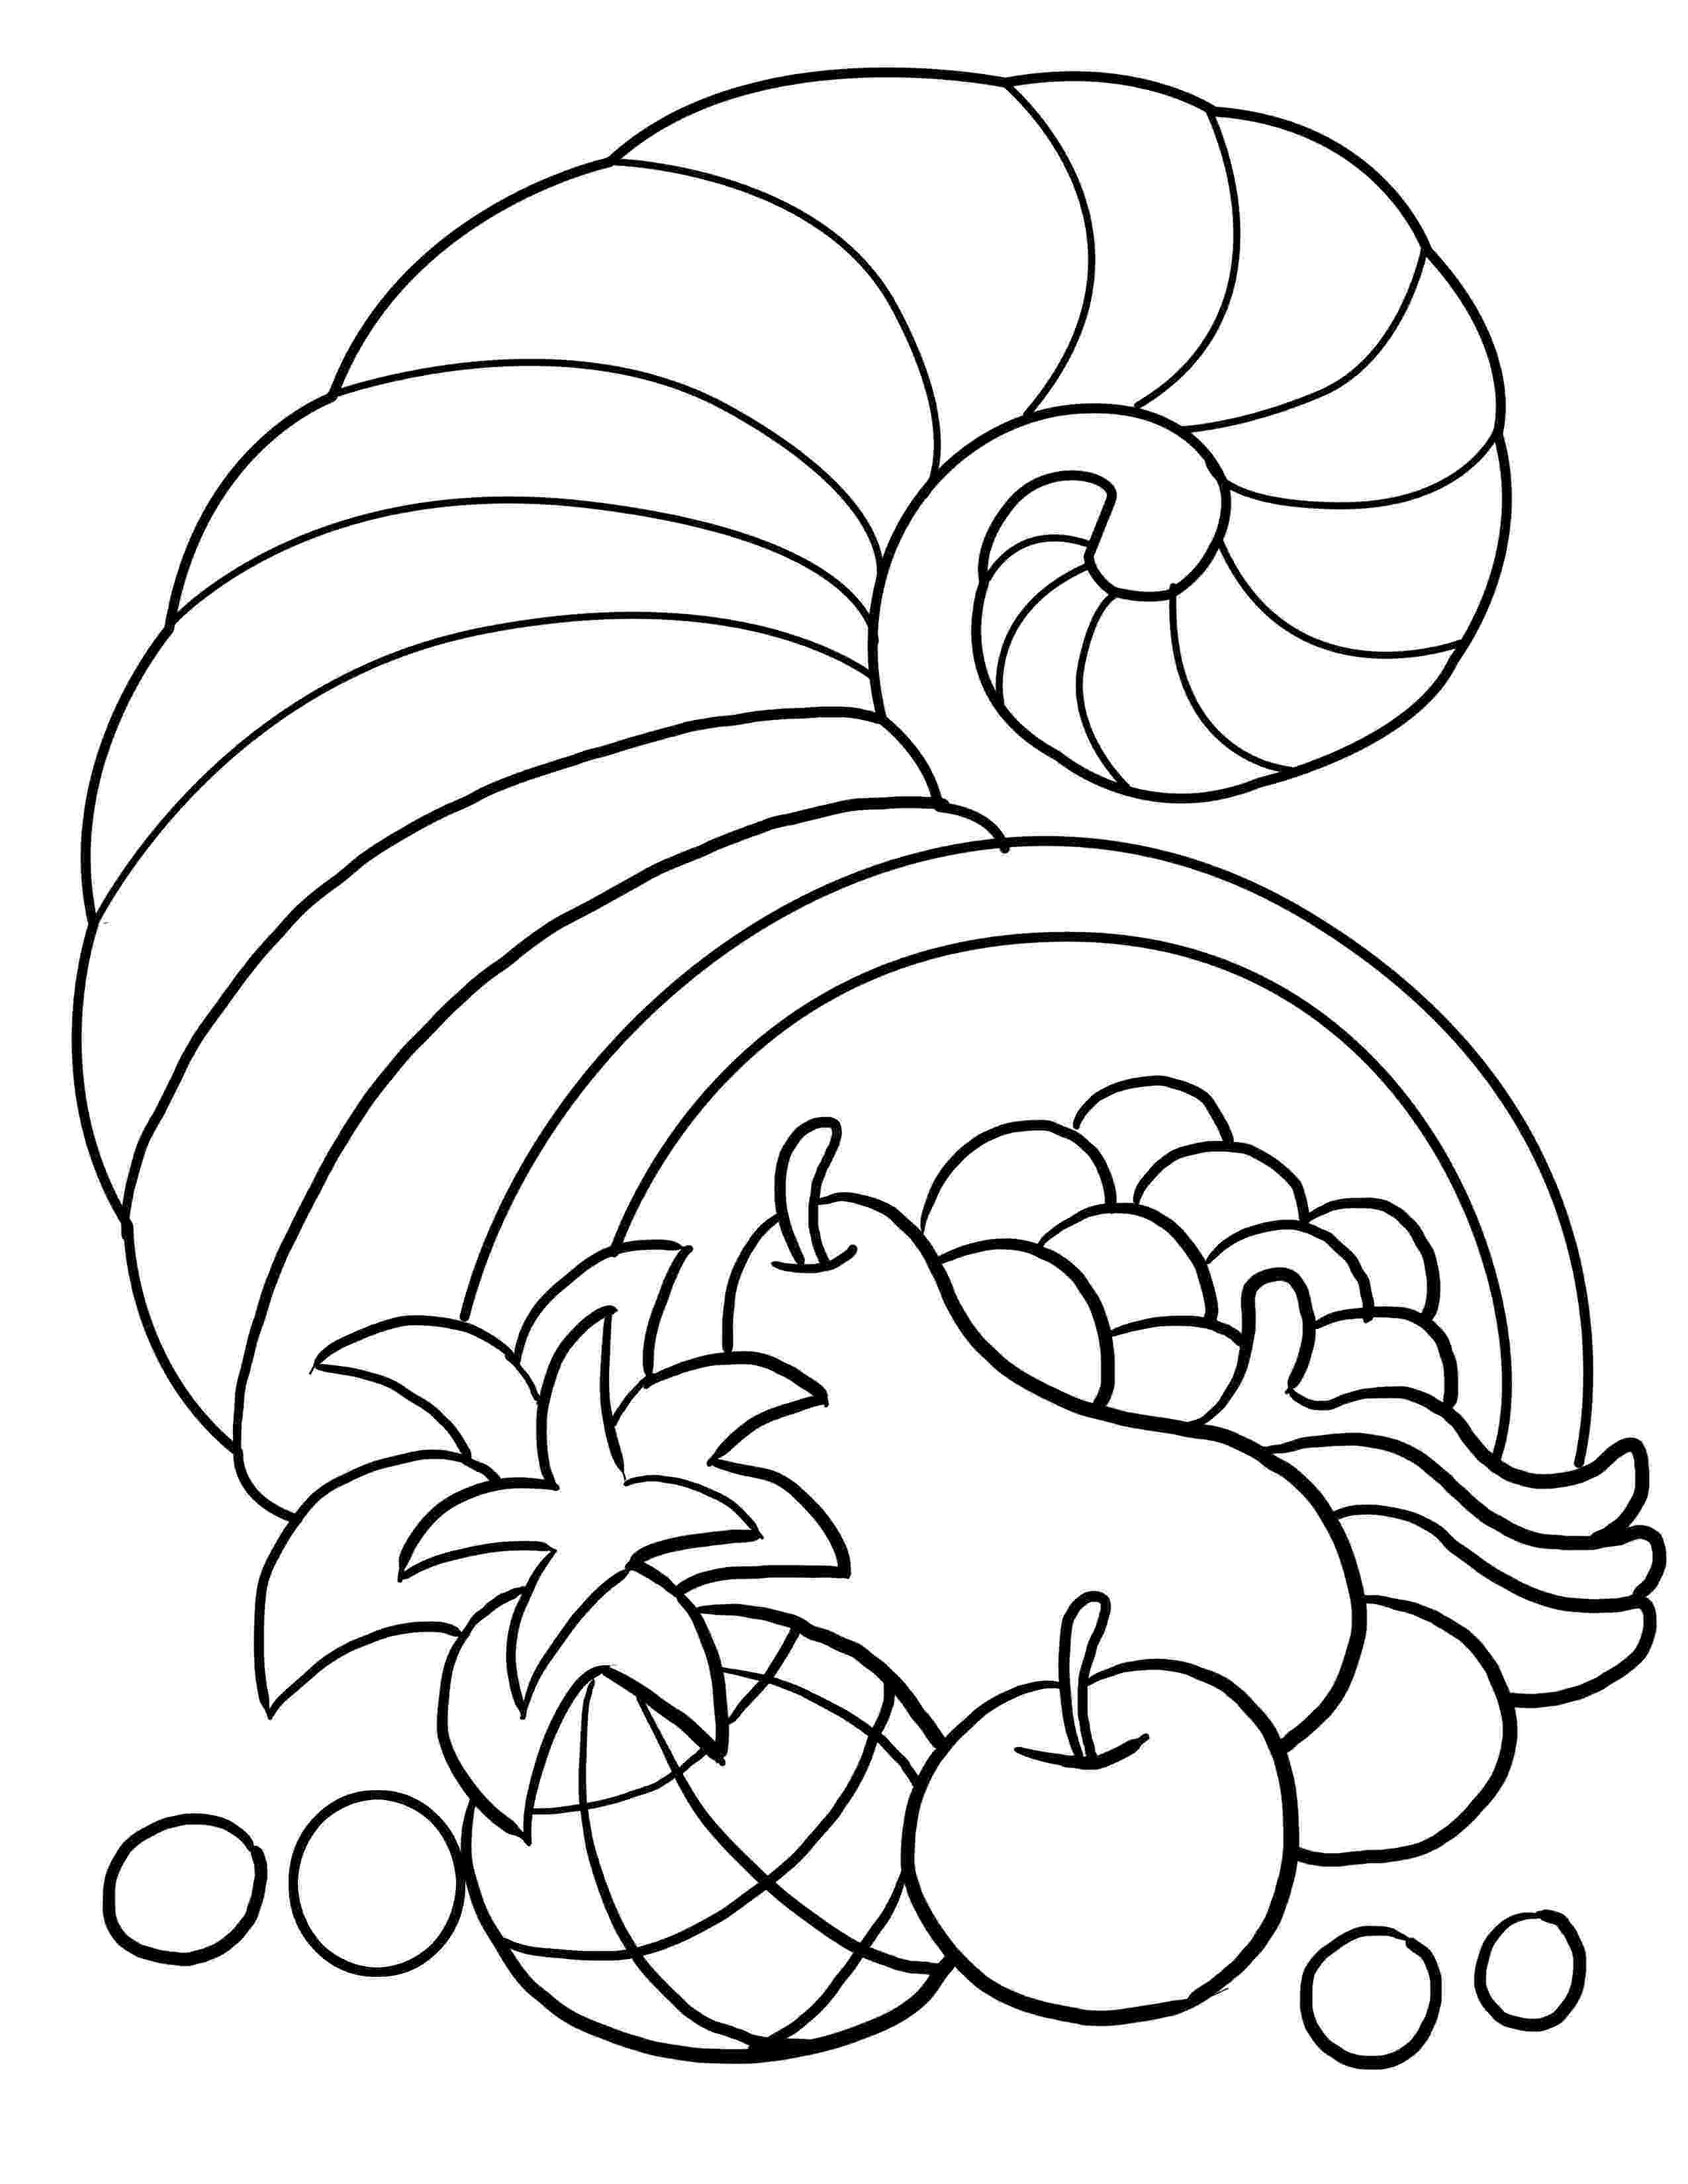 printable coloring pages thanksgiving free pictures of kittens to color pictures of animals 2016 free pages thanksgiving printable coloring